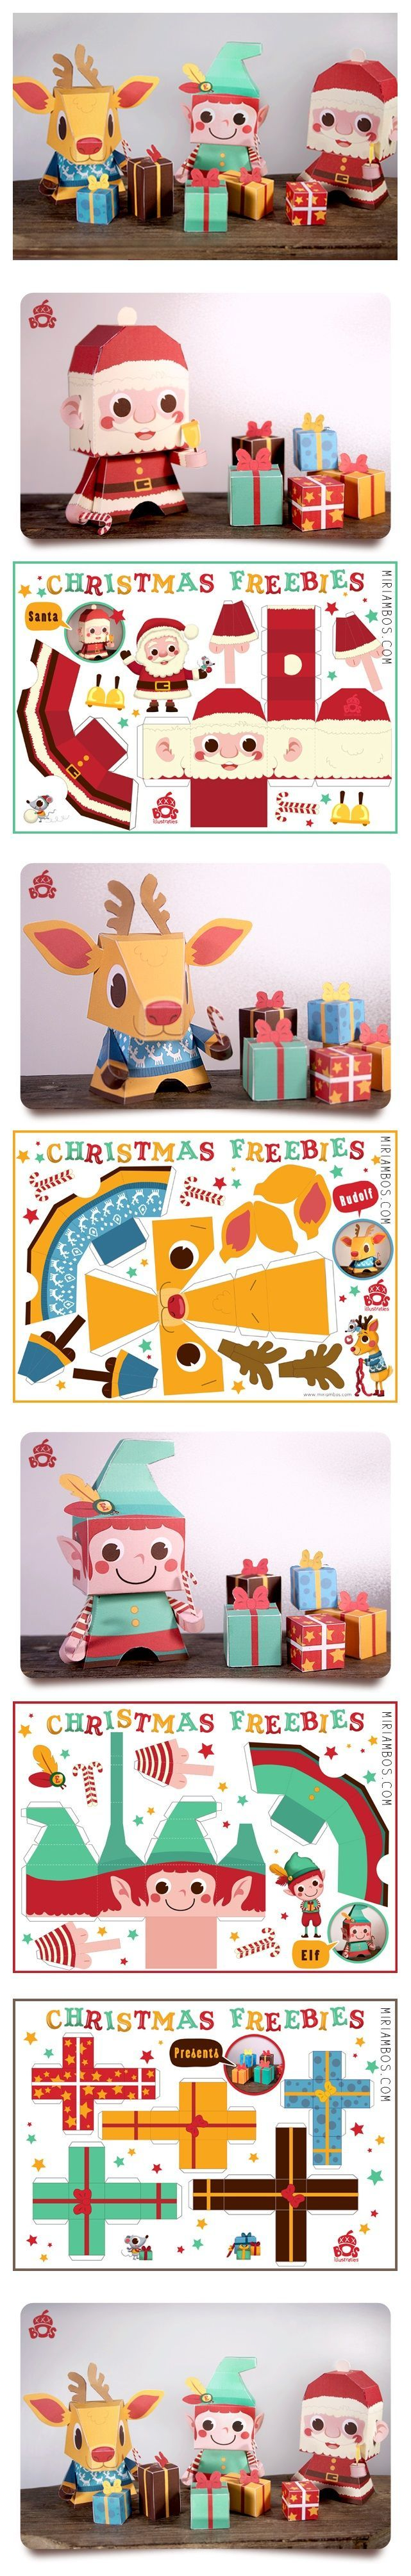 D coration de noel faire soi m me maternelle mobile - Decoration de noel facile a faire soi meme ...